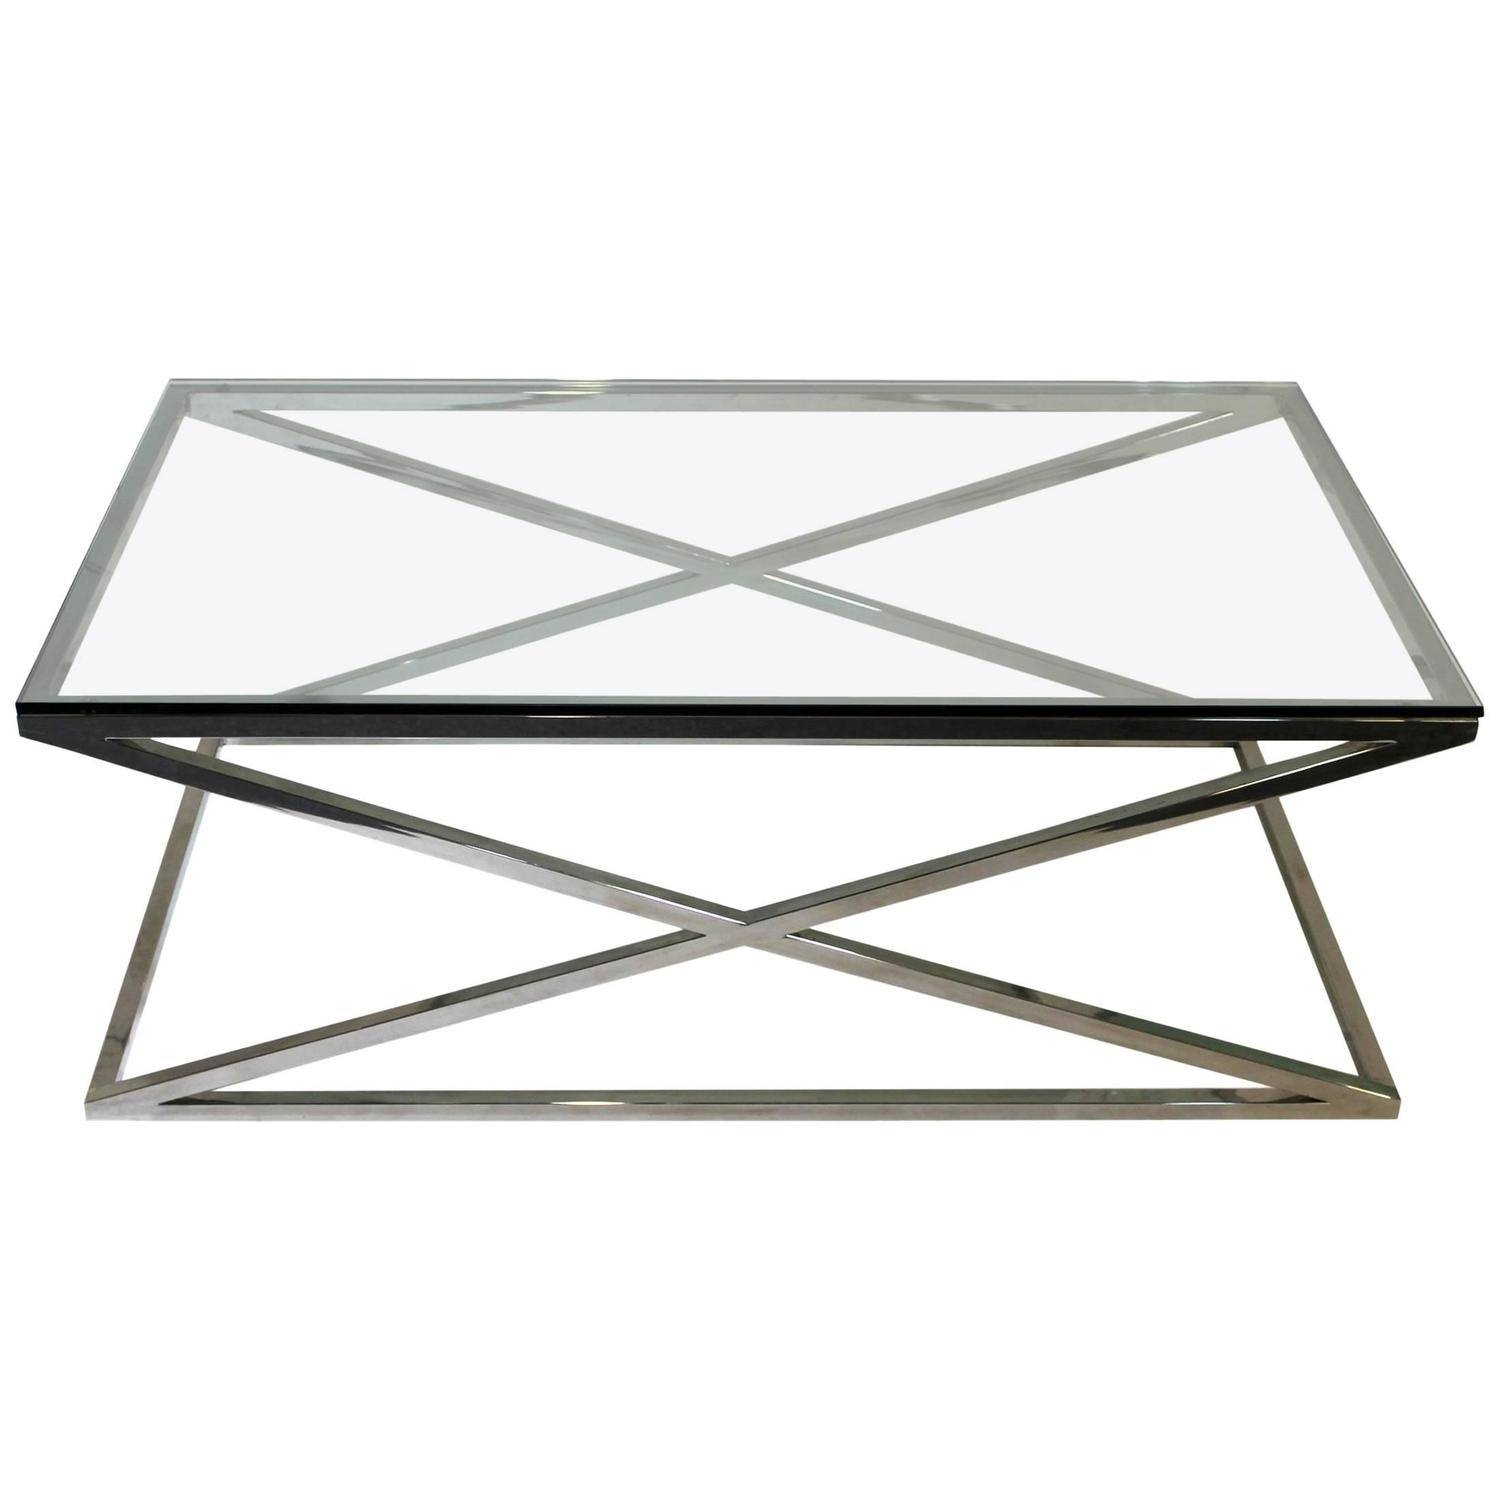 Mid-Century Modern Rectangular Glass Coffee Table Chrome X Base within Rectangle Glass Coffee Table (Image 10 of 15)